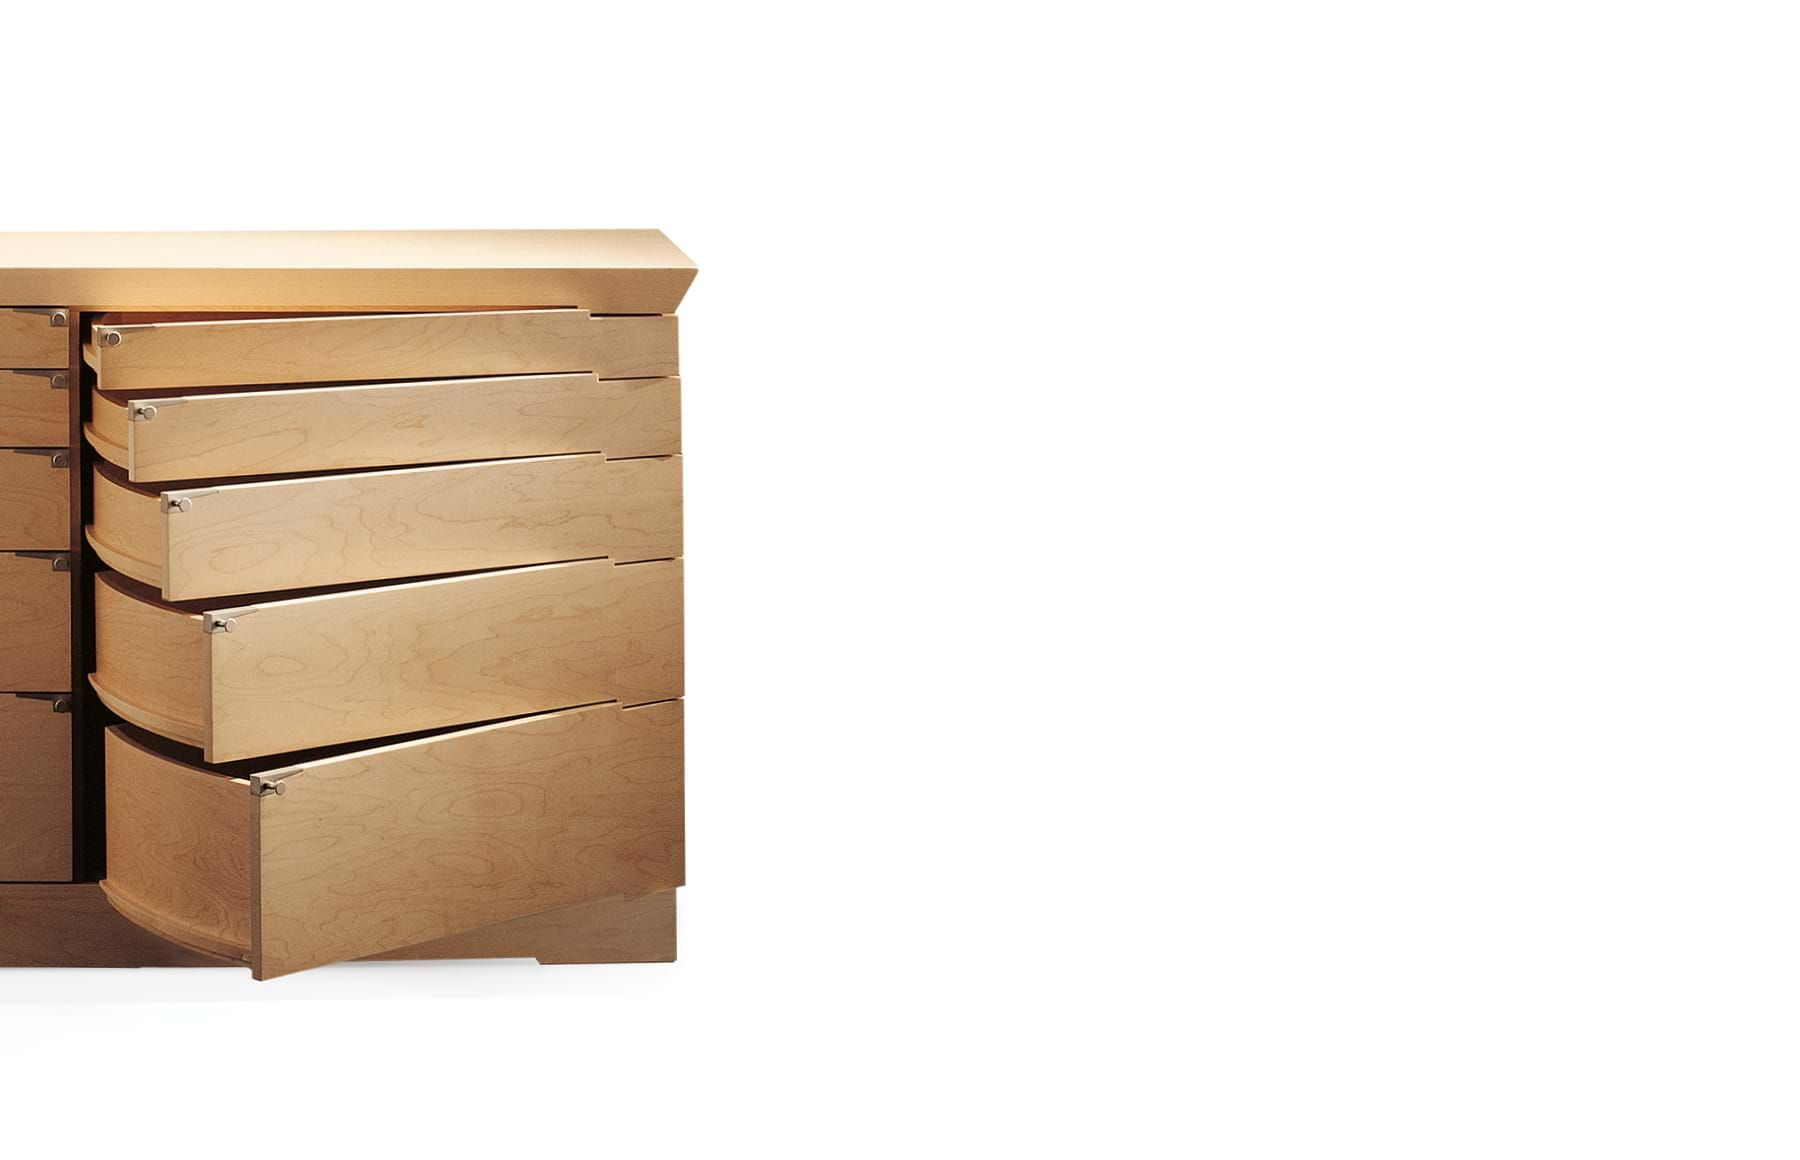 Eon Sideboards and chests of drawers 1